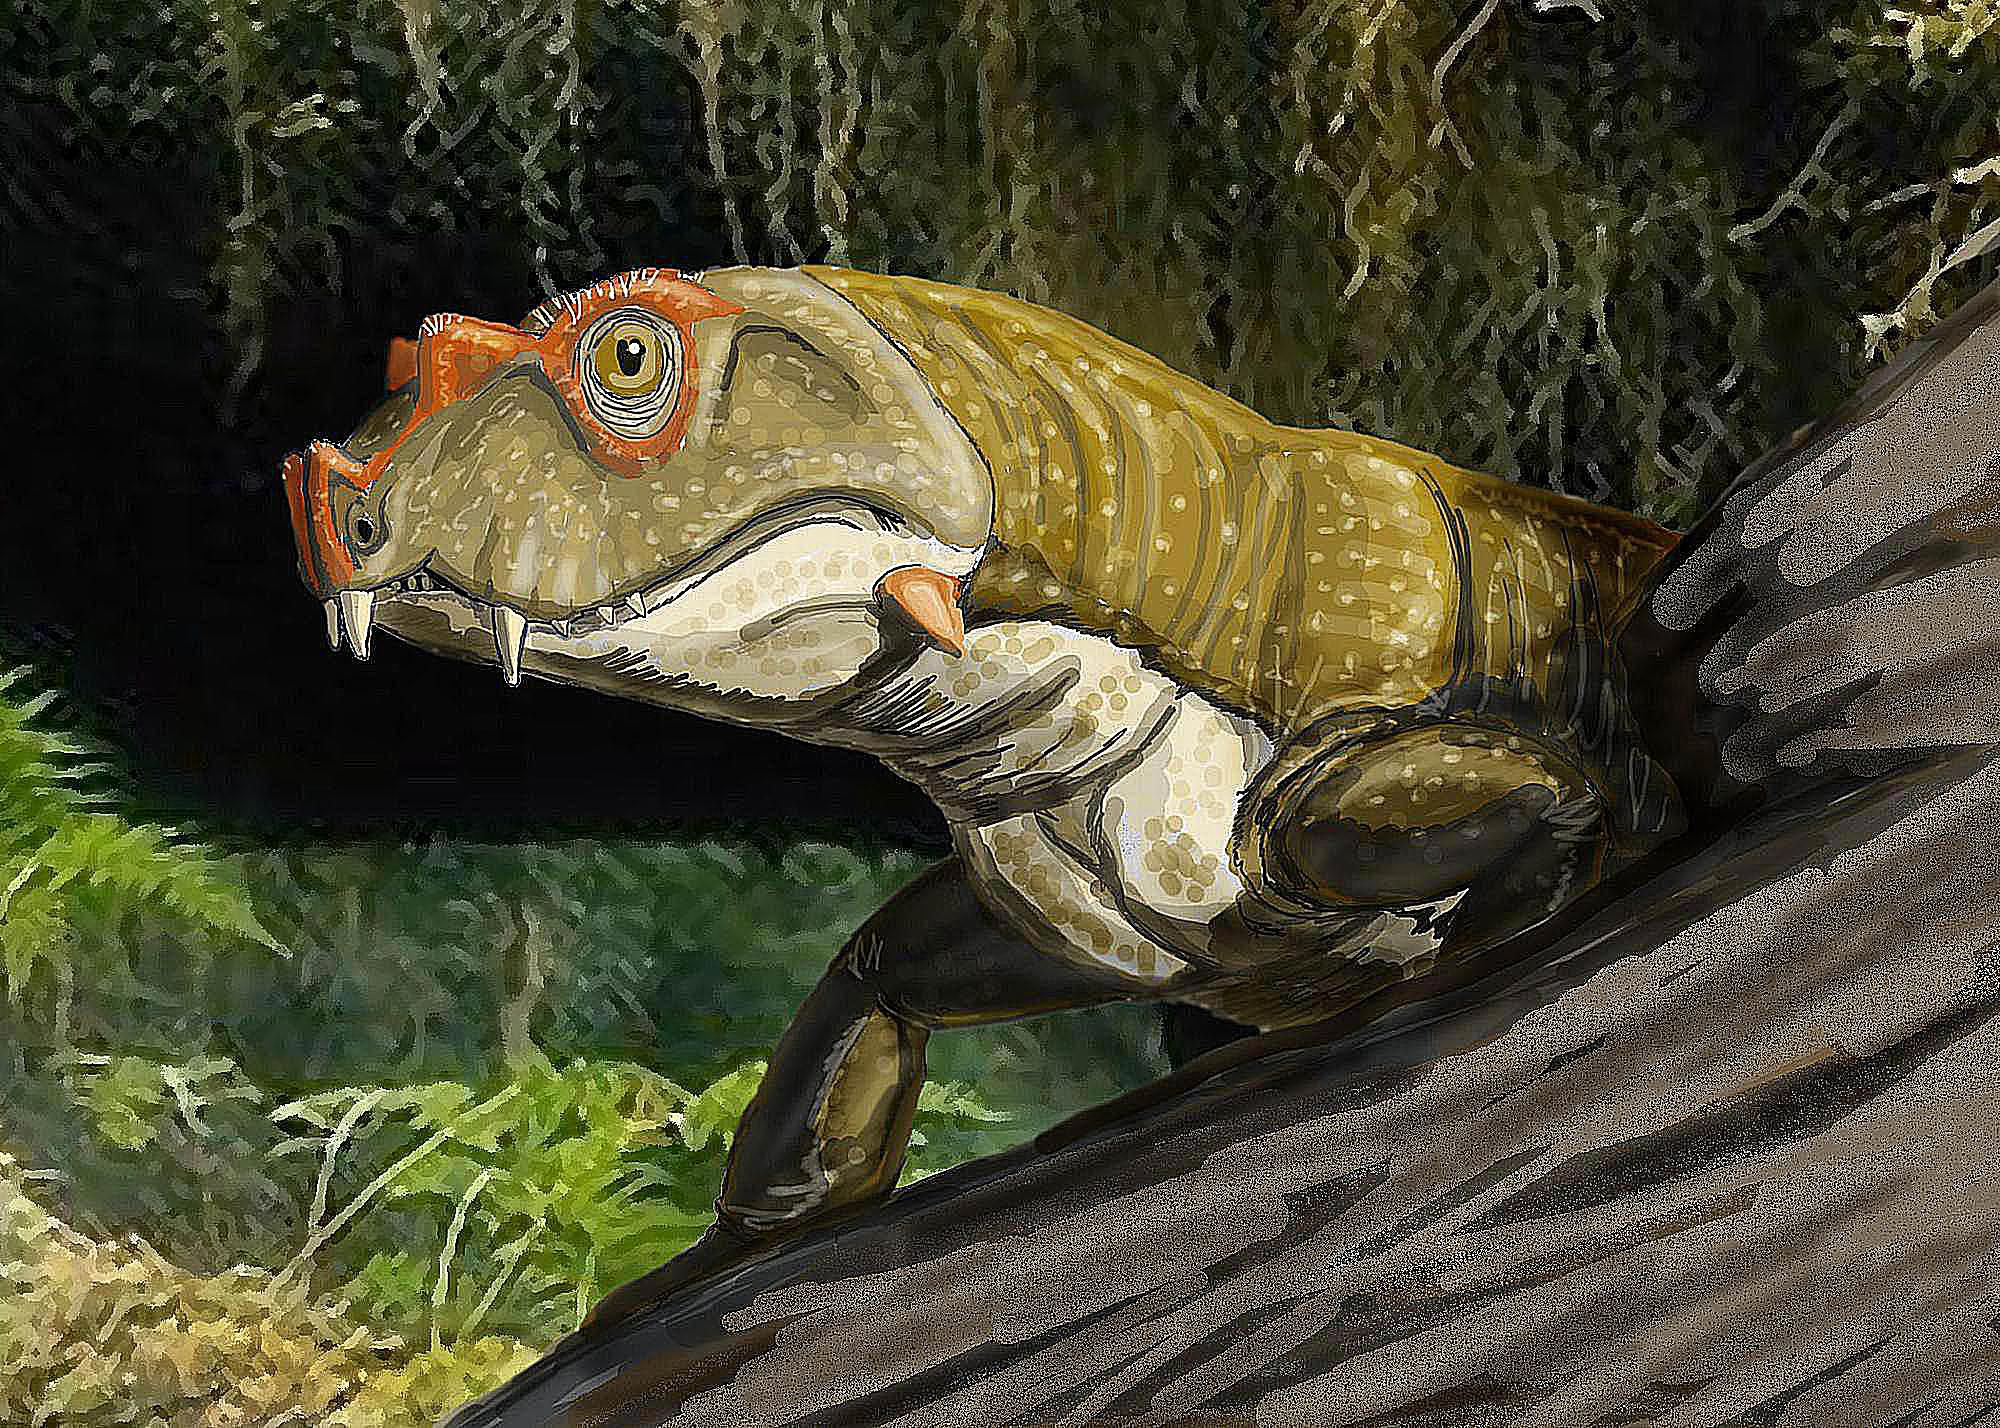 The First Reptiles And Their Evolution